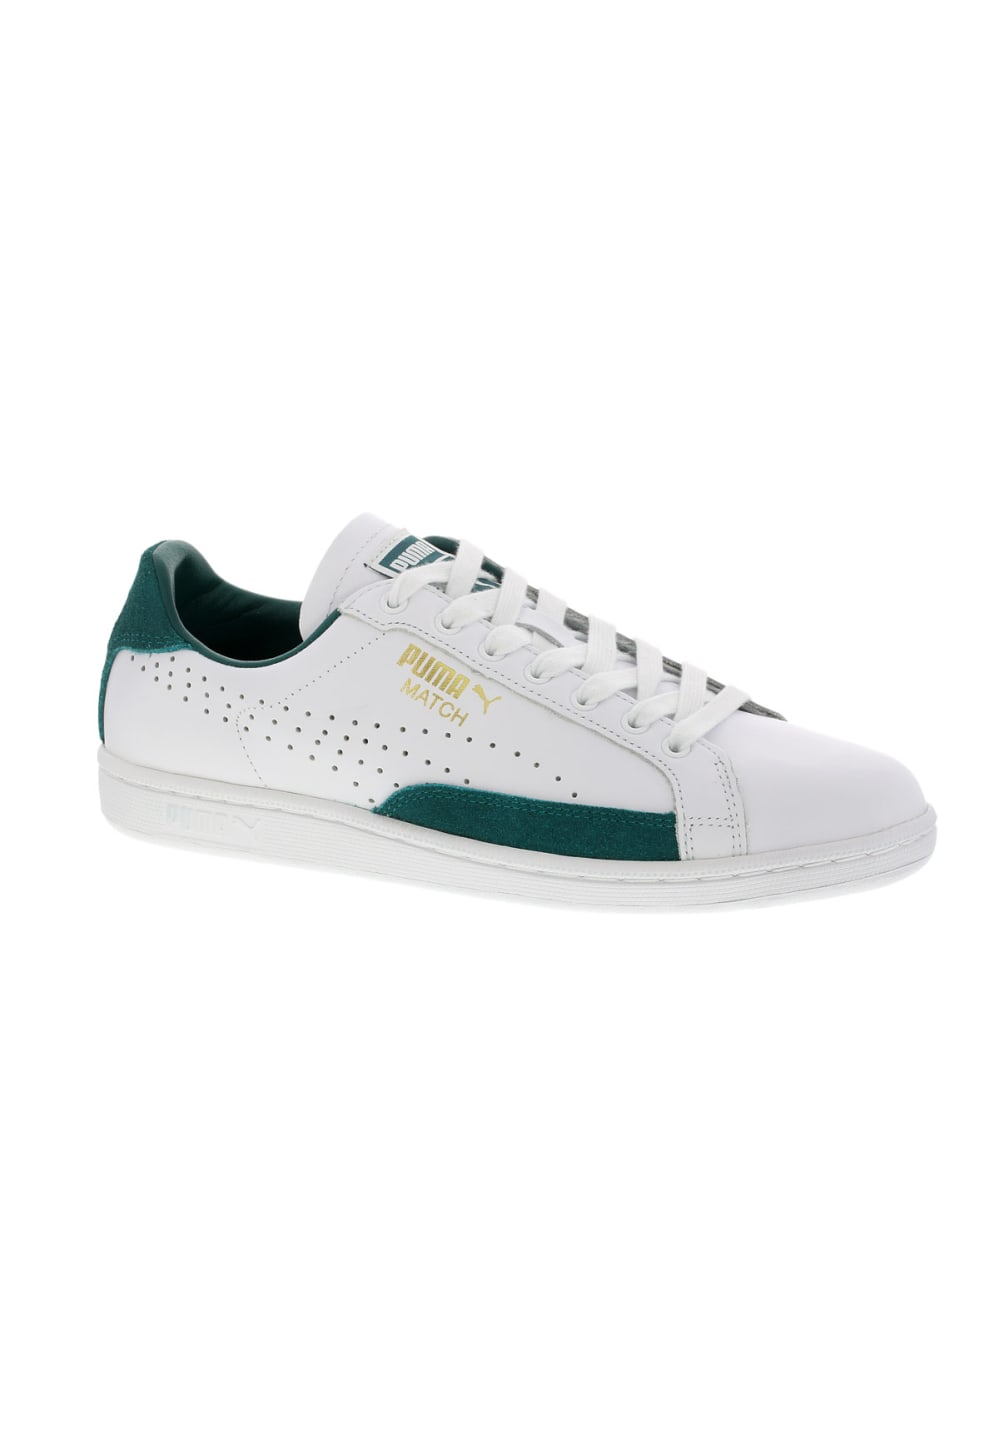 on sale 3c50a 745e9 Next. -60%. Puma. Match 74 UPC - Chaussures de tennis pour Homme